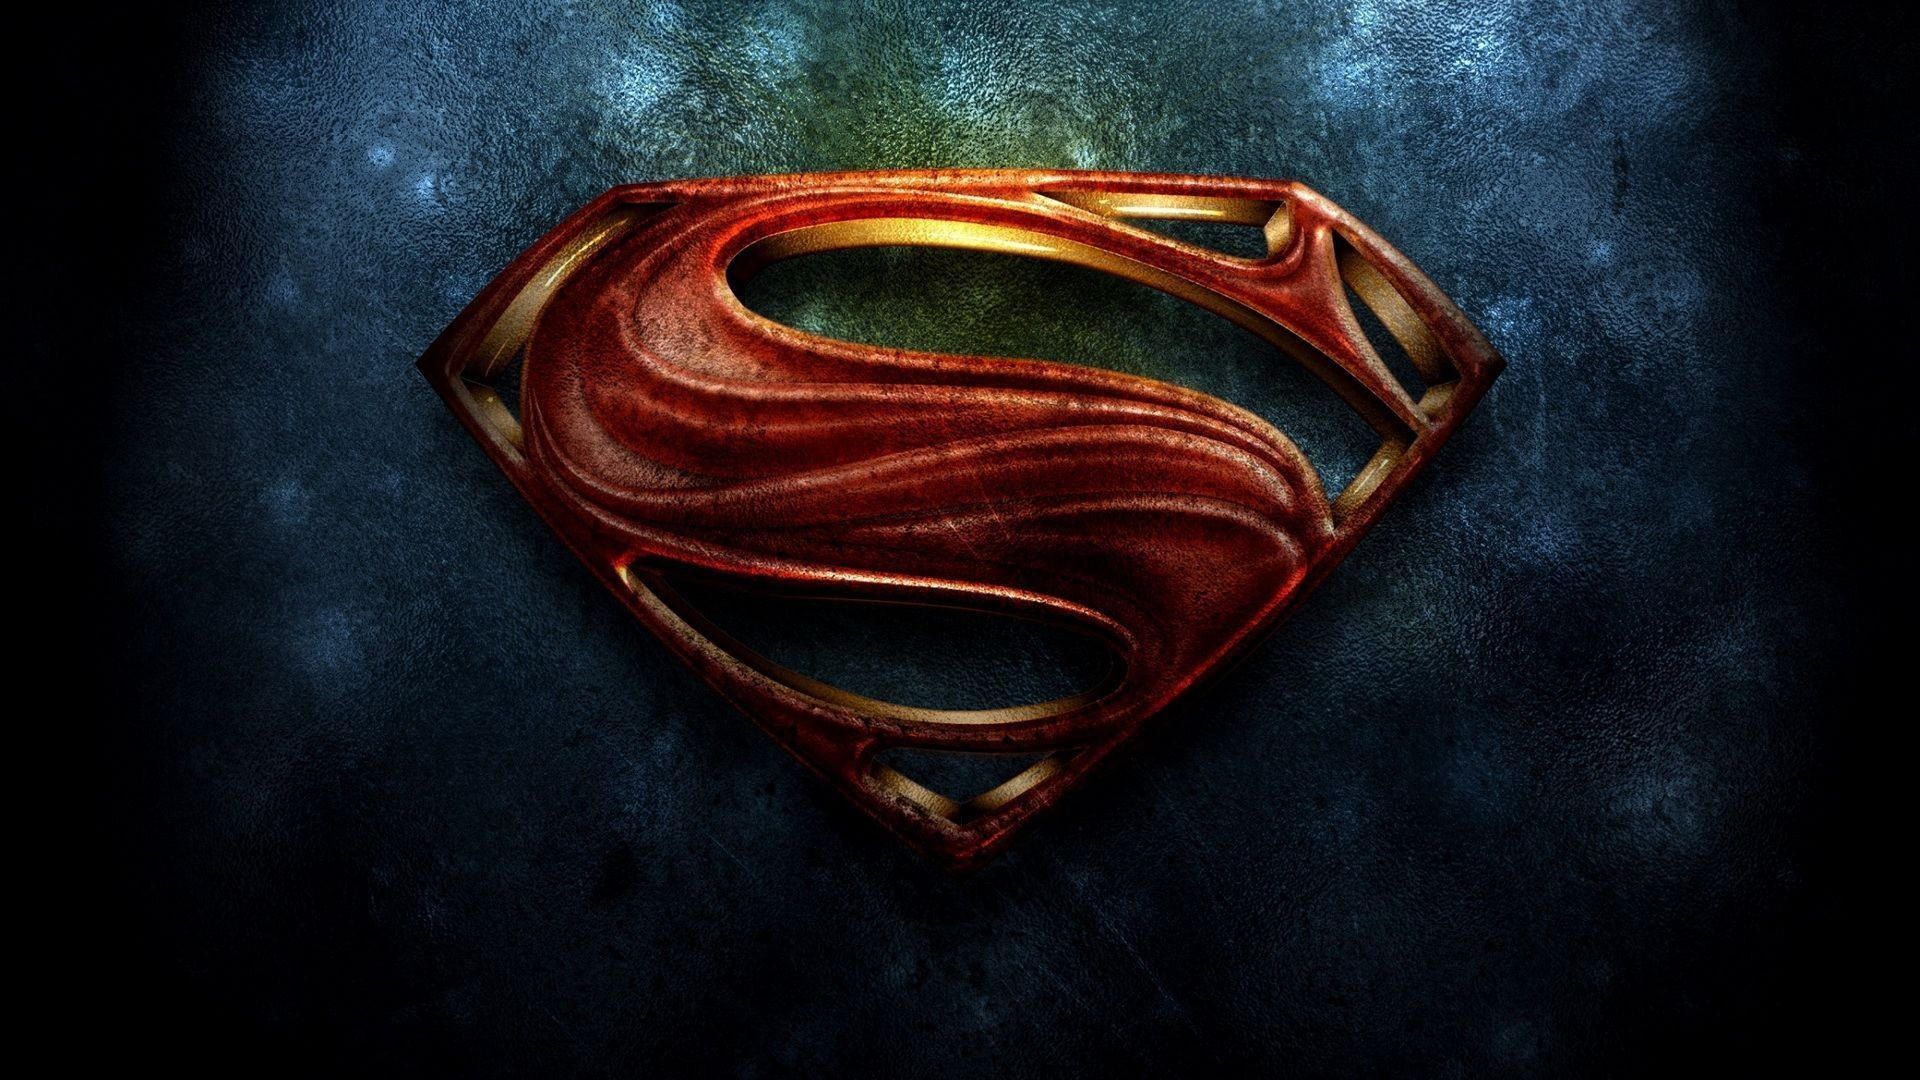 1920x1080 Superman Wallpapers Wallpaper 1600×900 Superman Image Wallpapers (41  Wallpapers) | Adorable Wallpapers